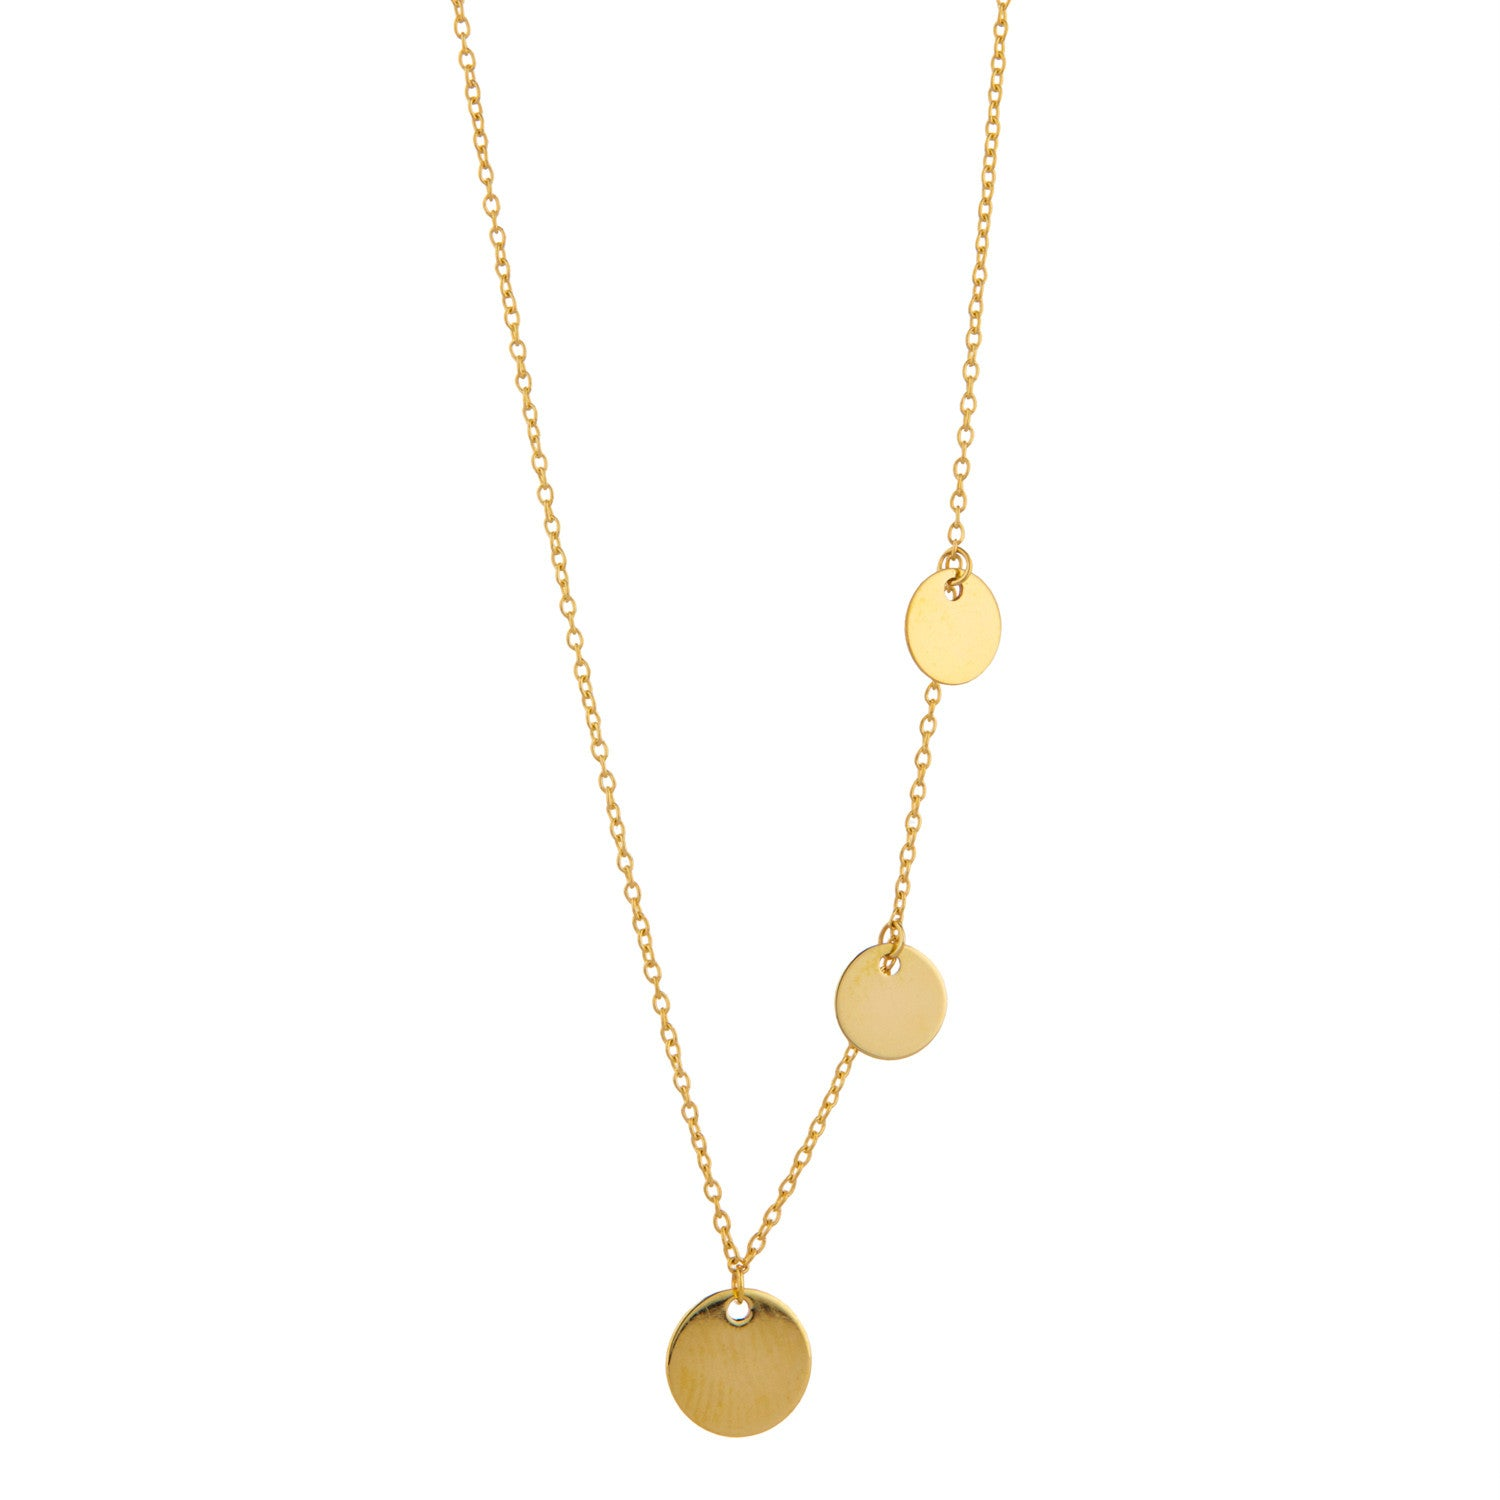 9kt Gold 3 Discs Necklace - MoMuse Jewellery